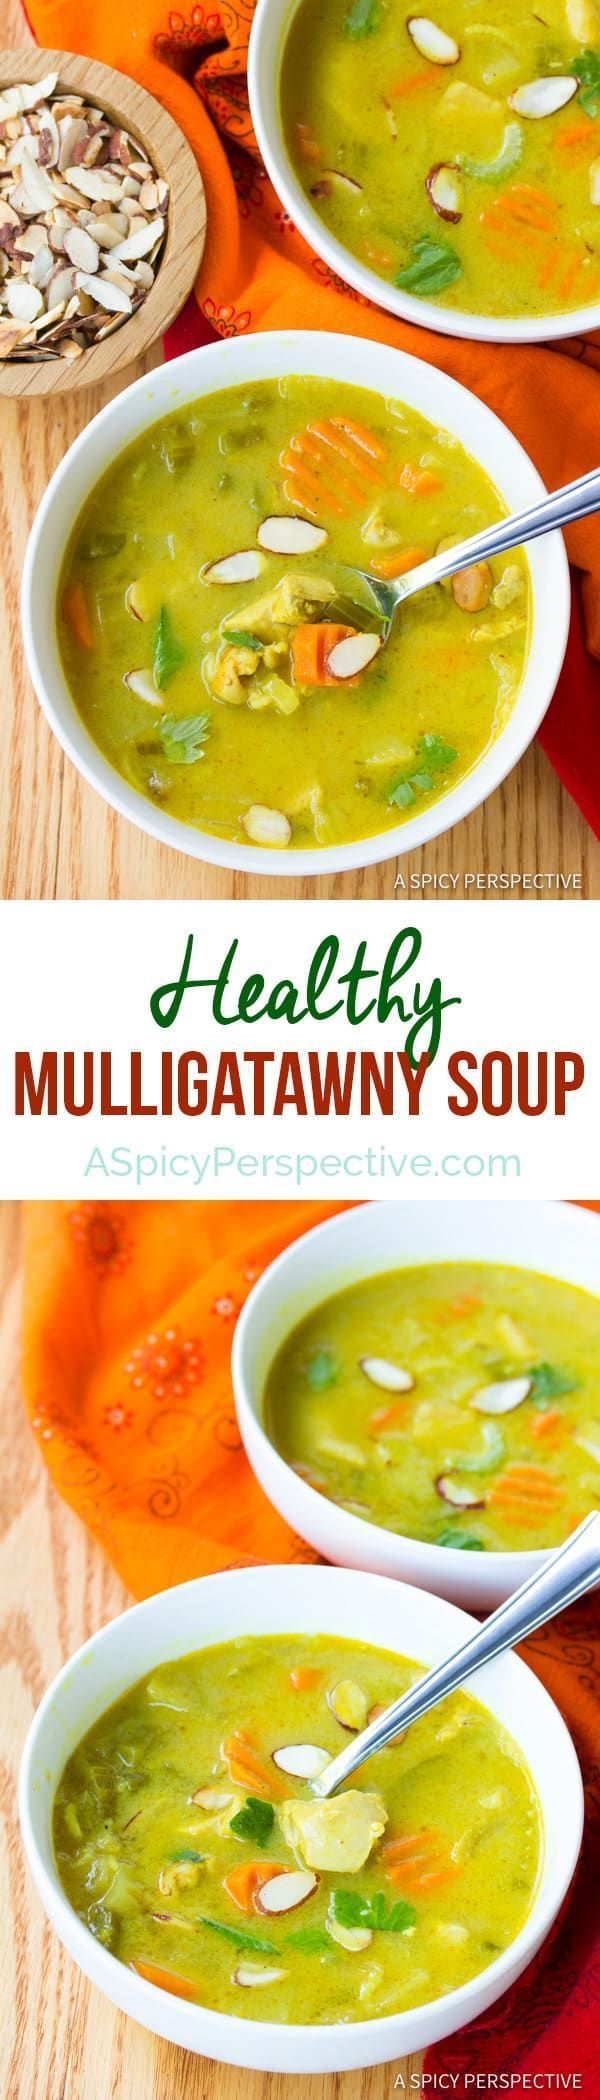 The Best Healthy Mulligatawny Soup | ASpicyPerspective.com #LowCarb #GlutenFree via @spicyperspectiv #mulligatawnysoup The Best Healthy Mulligatawny Soup | ASpicyPerspective.com #LowCarb #GlutenFree via @spicyperspectiv #mulligatawnysoup The Best Healthy Mulligatawny Soup | ASpicyPerspective.com #LowCarb #GlutenFree via @spicyperspectiv #mulligatawnysoup The Best Healthy Mulligatawny Soup | ASpicyPerspective.com #LowCarb #GlutenFree via @spicyperspectiv #mulligatawnysoup